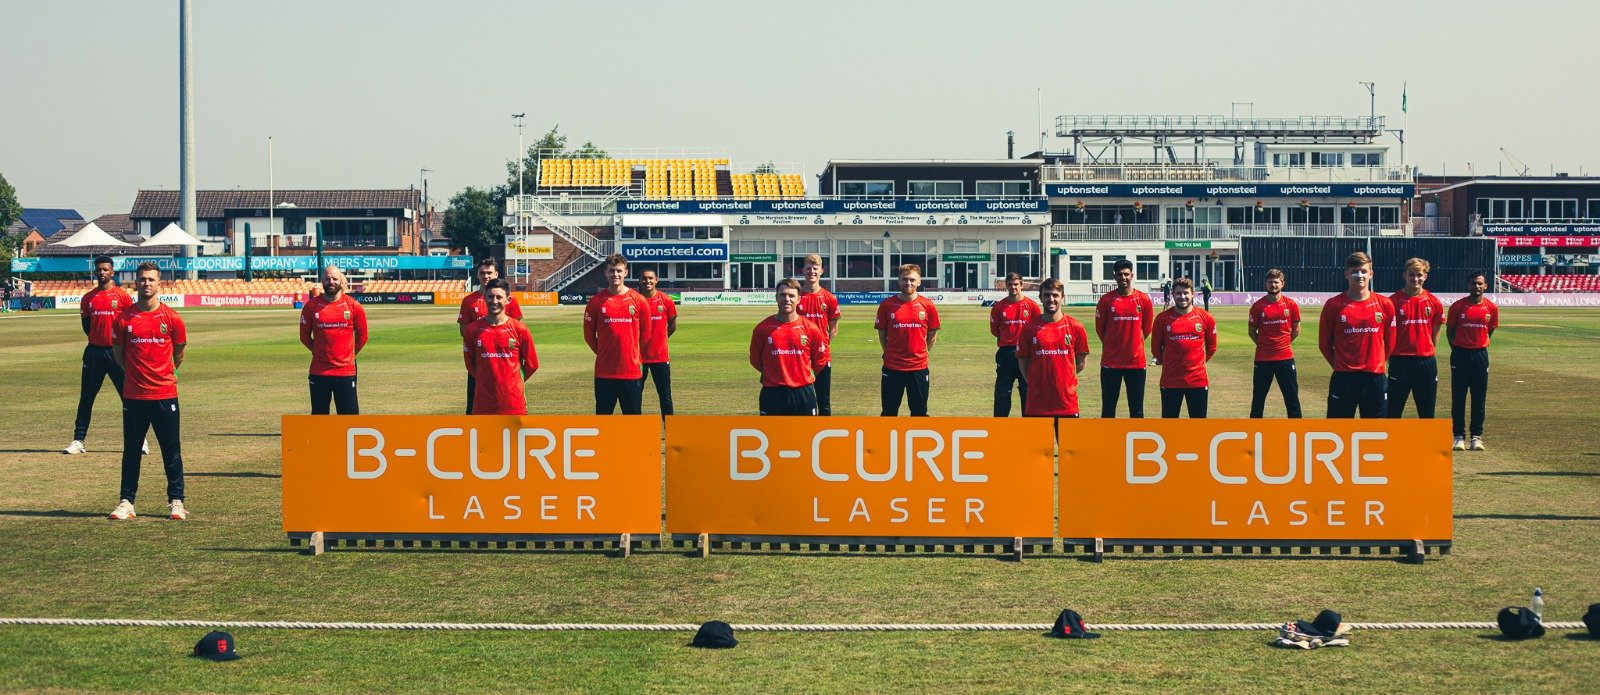 Game-Changing B-Cure Laser Device Speeding Up Recovery Times for Professional Athletes